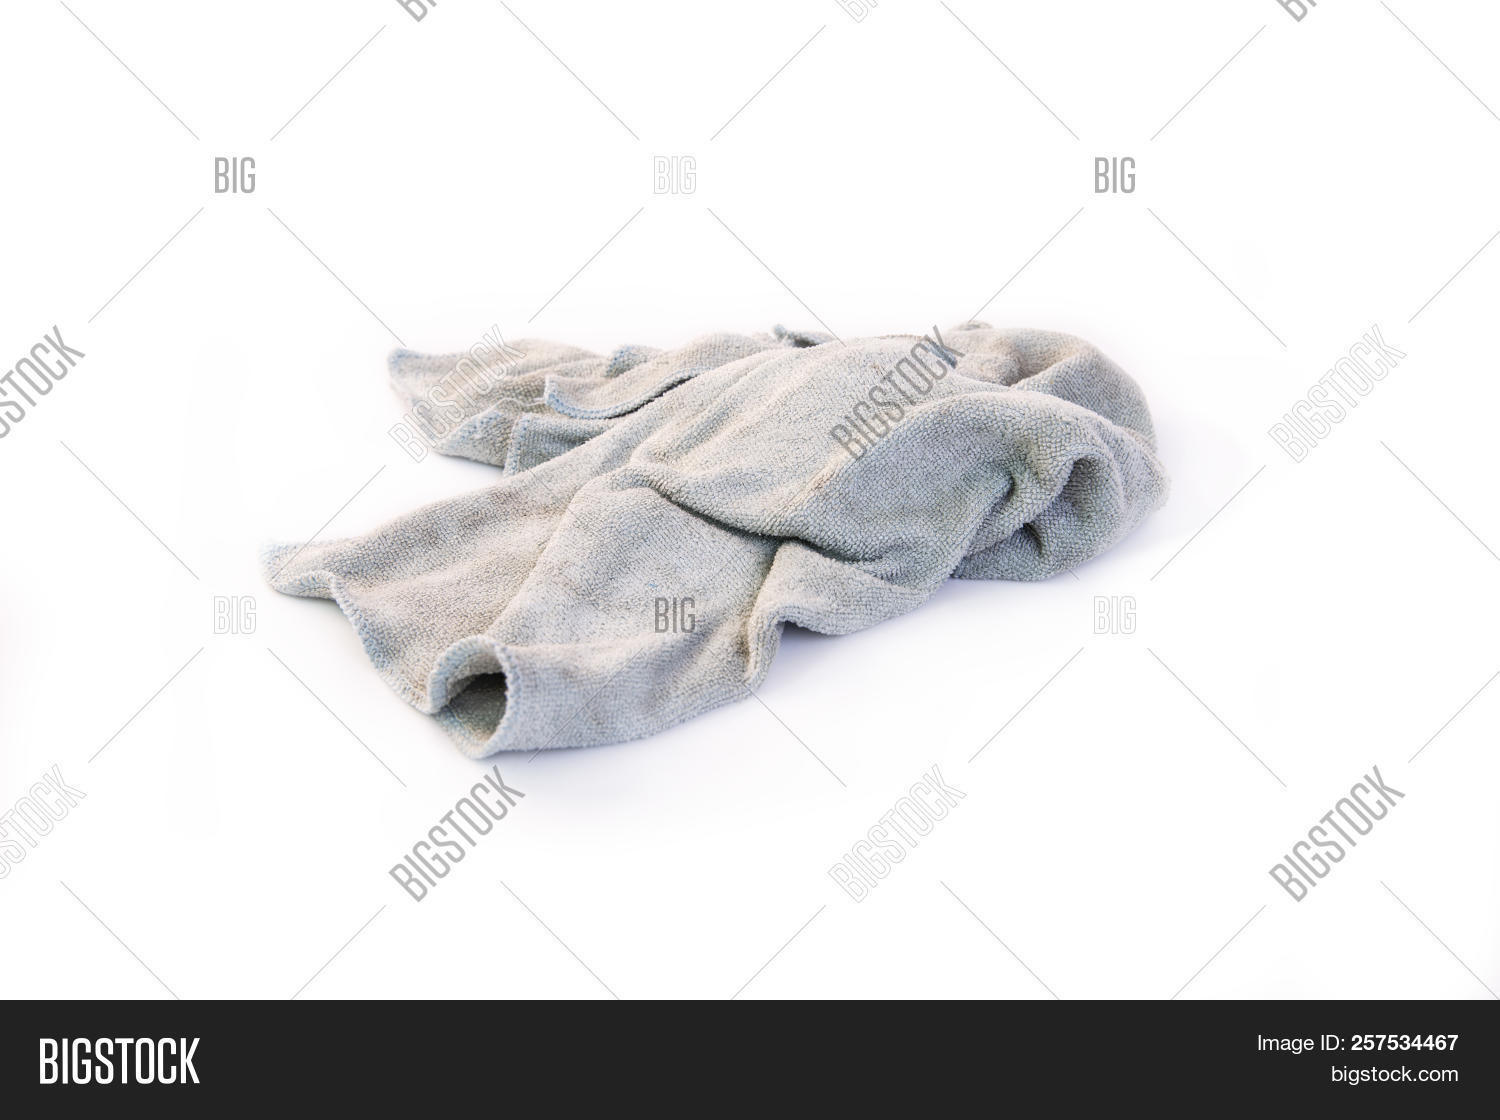 fb56a01ab4d0e Old Dirty Rag Isolated Image & Photo (Free Trial) | Bigstock